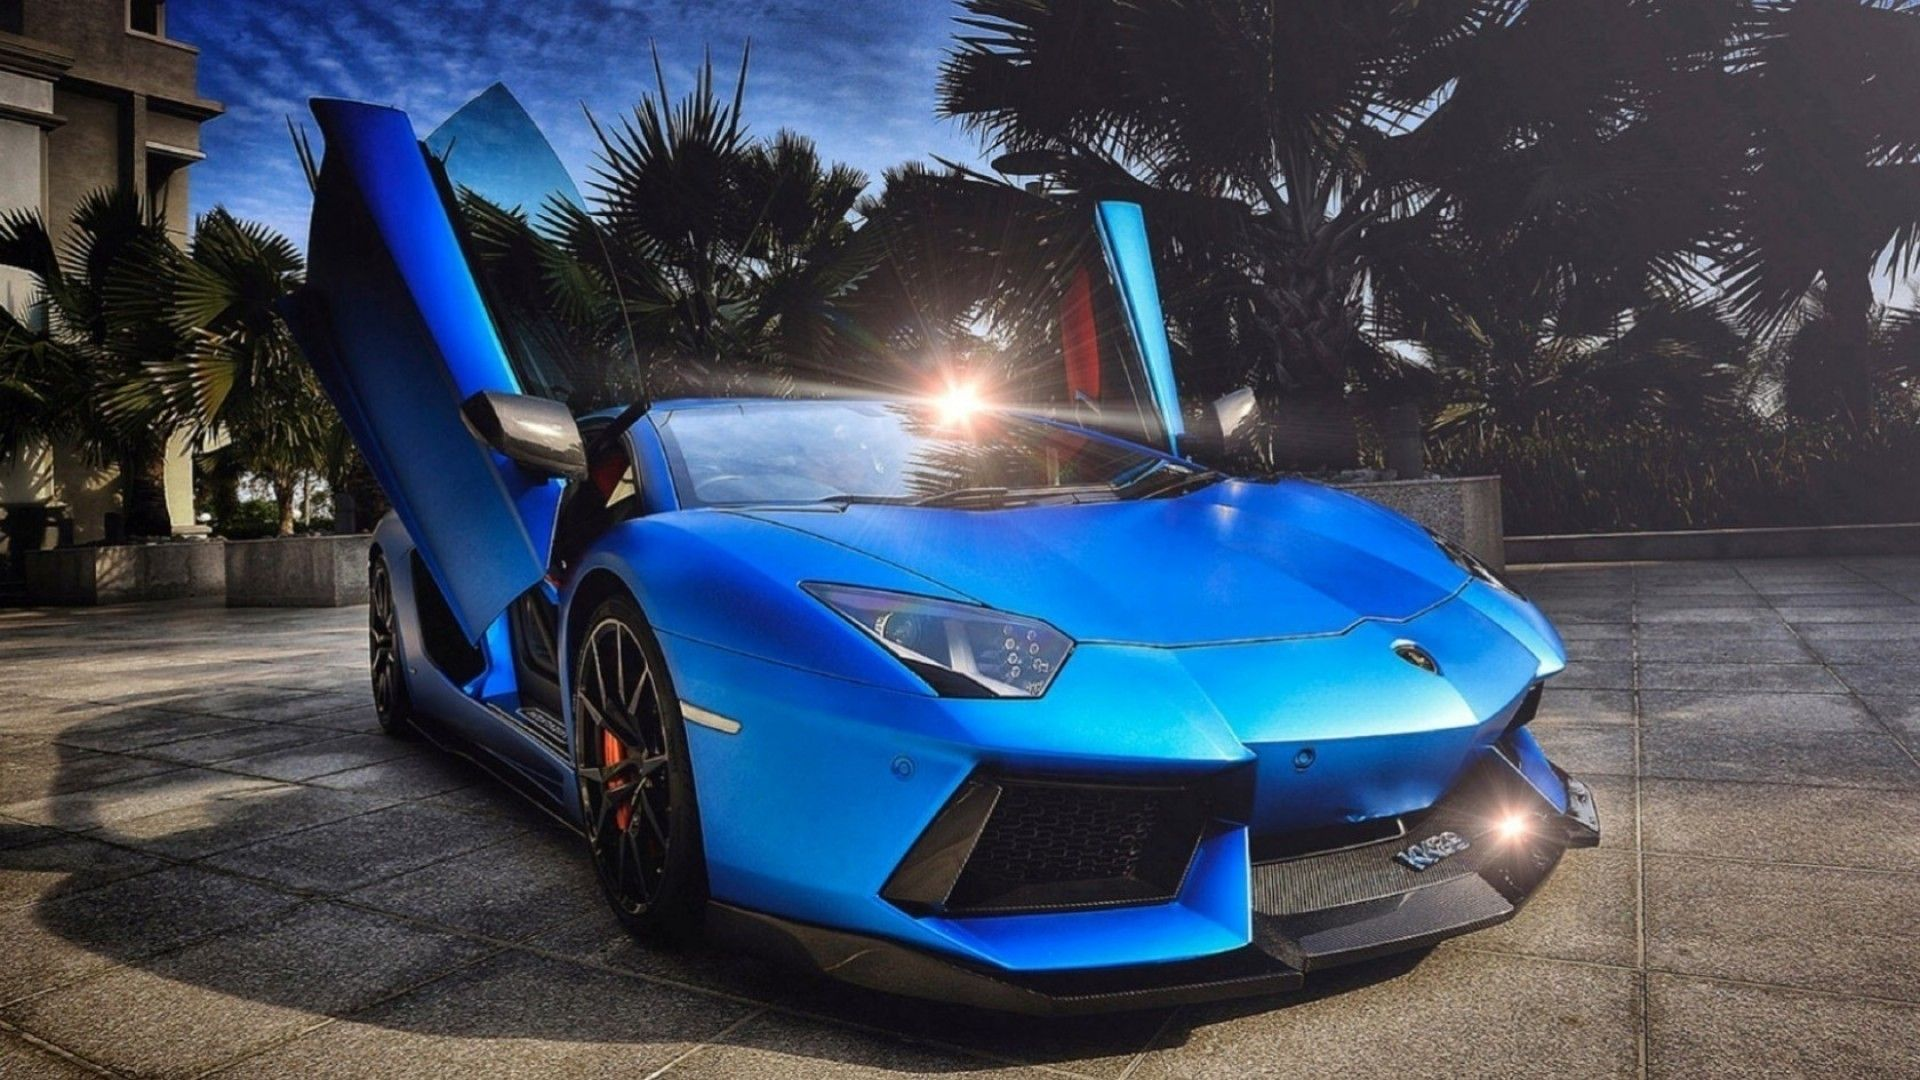 1920x1080 1144 Blue Lamborghini Aventador Wallpaper Cars